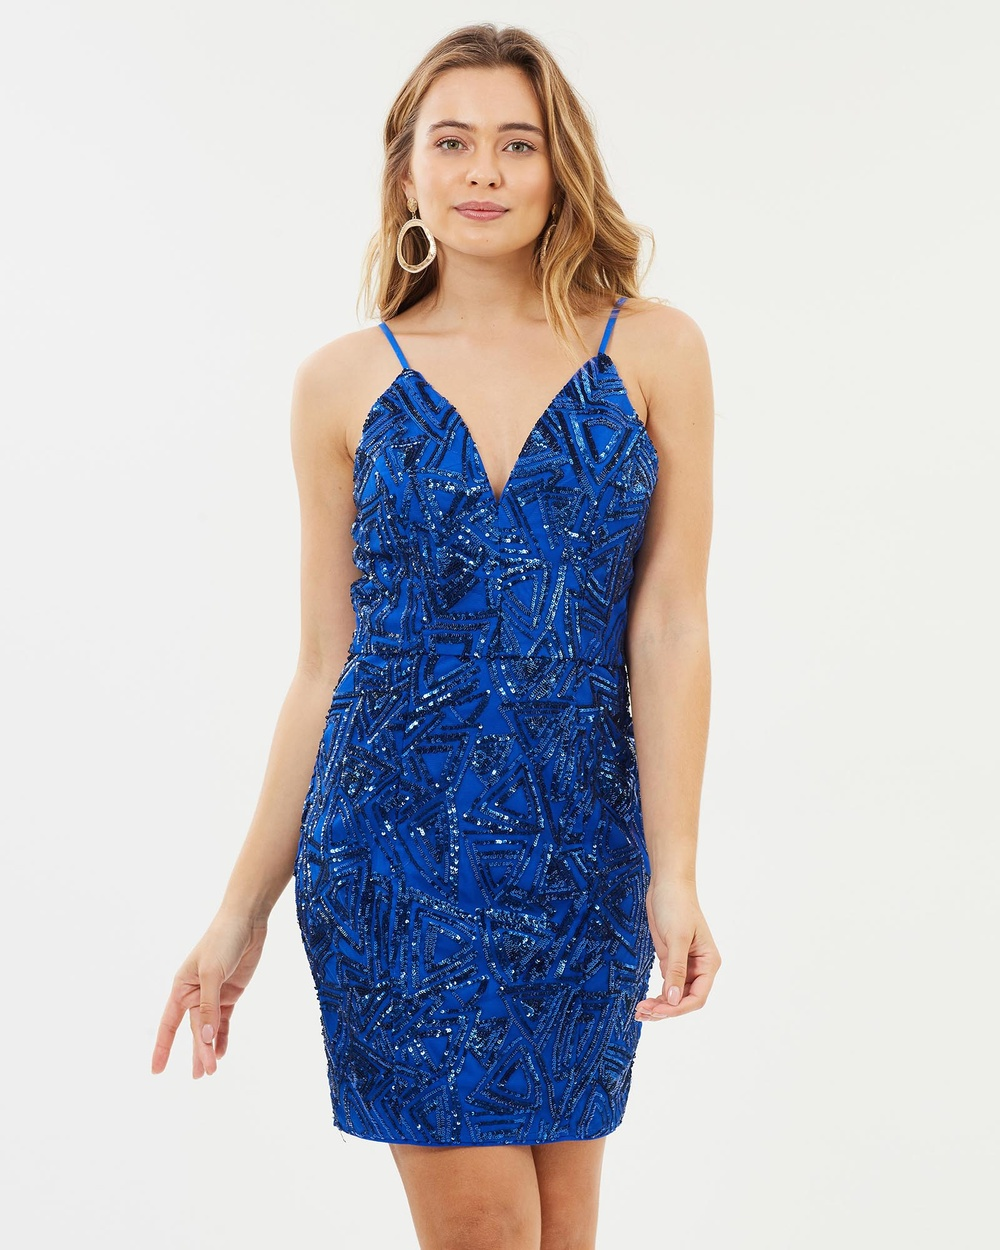 Romance by Honey and Beau Alyssa Sequin Dress Bridesmaid Dresses Blue Alyssa Sequin Dress